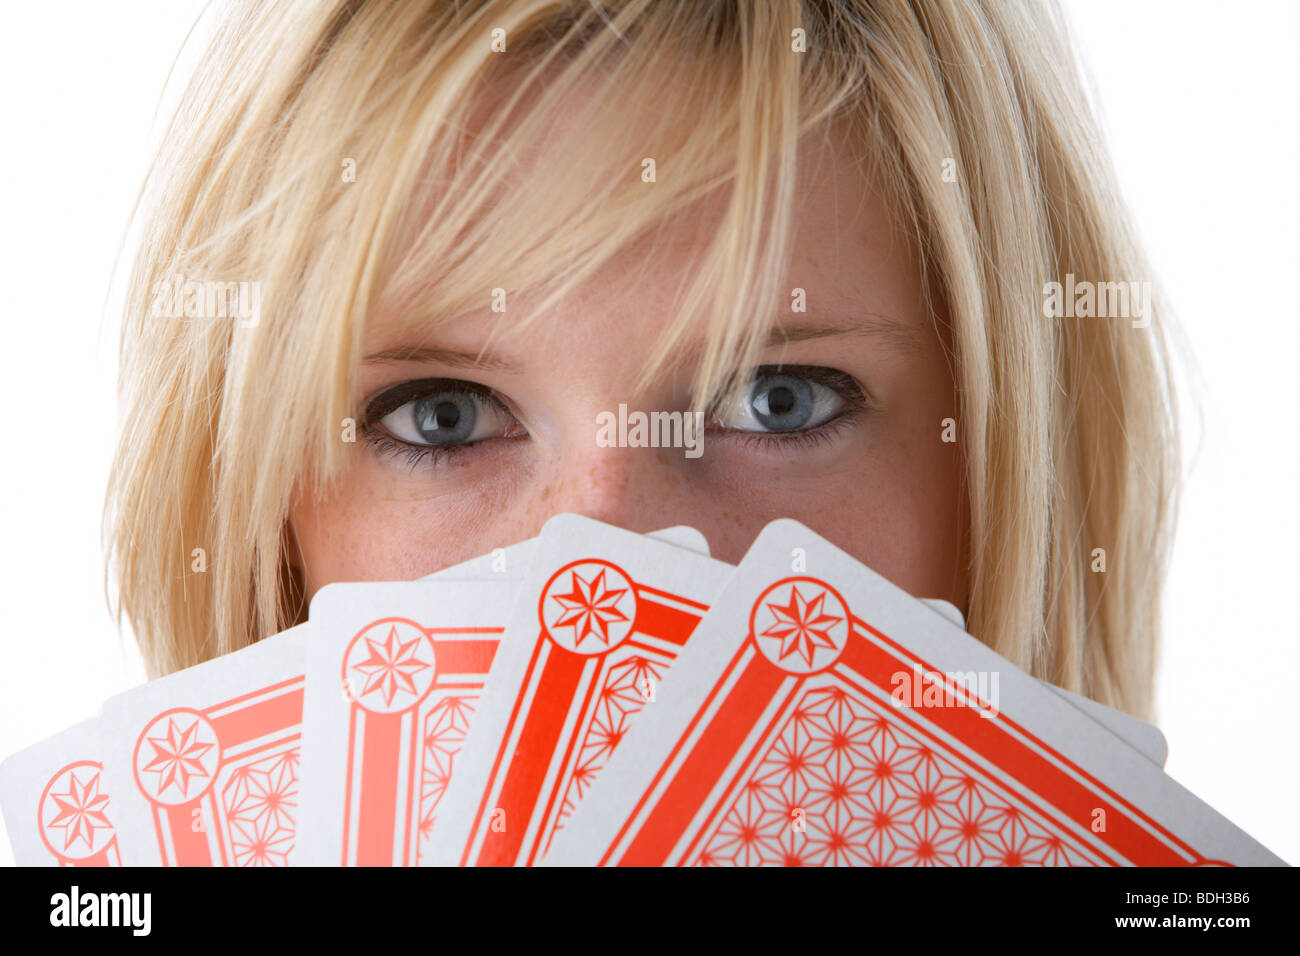 young 20 year old blonde woman holding five large playing cards over her face - Stock Image